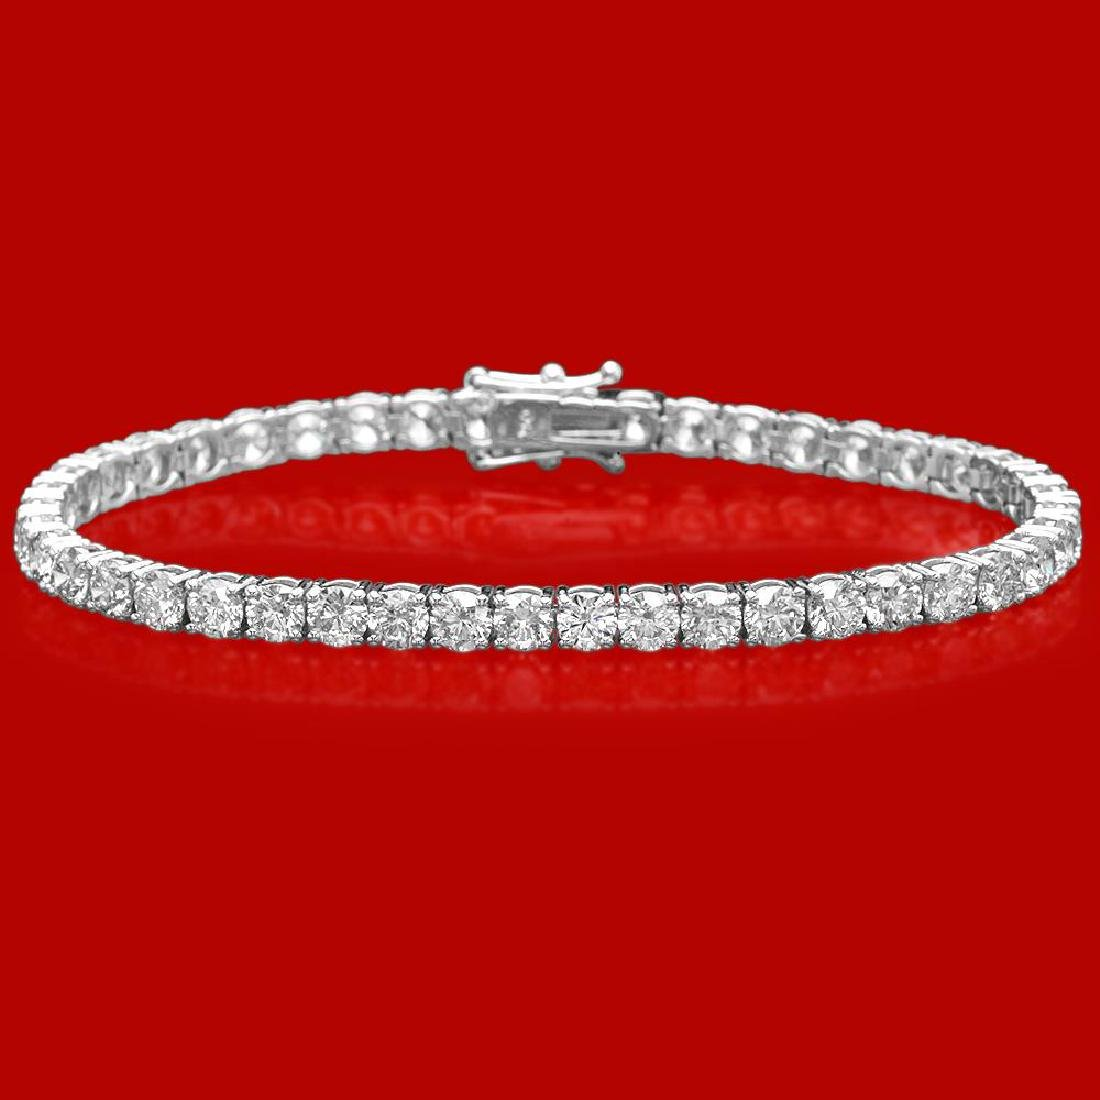 18k Gold 10.75ct Diamond Bracelet